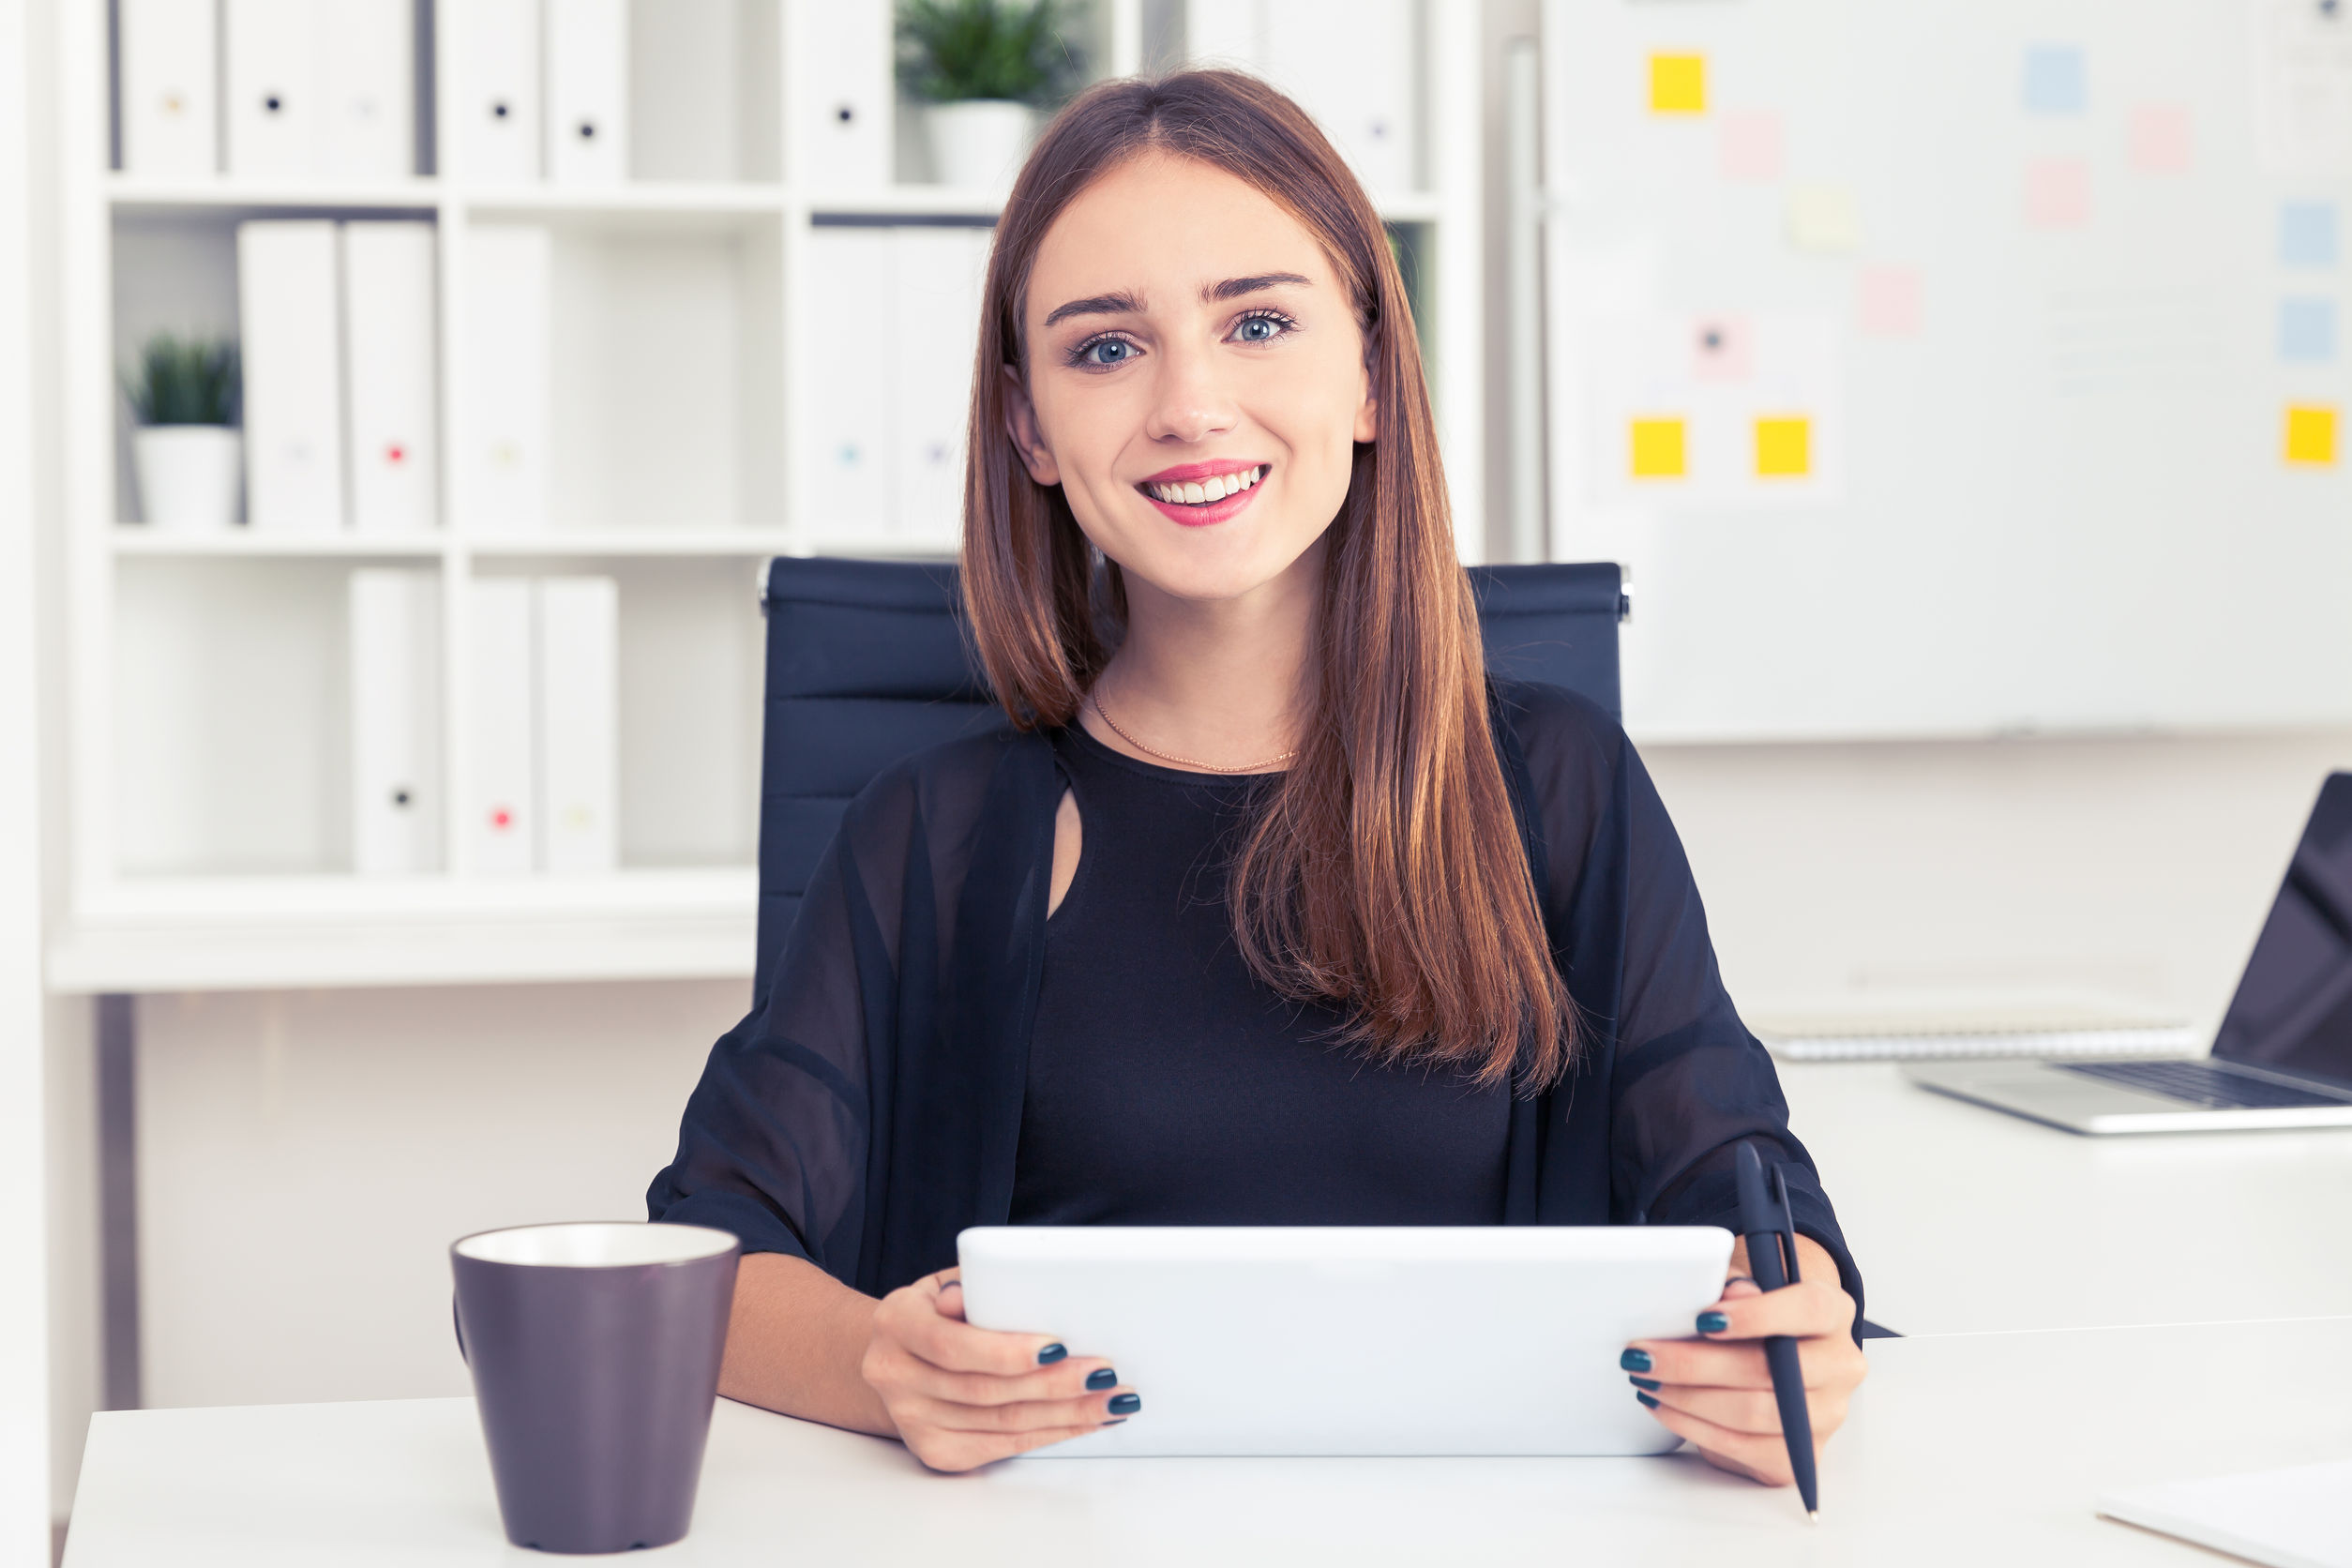 Five Tips to Help You Love Your First Job